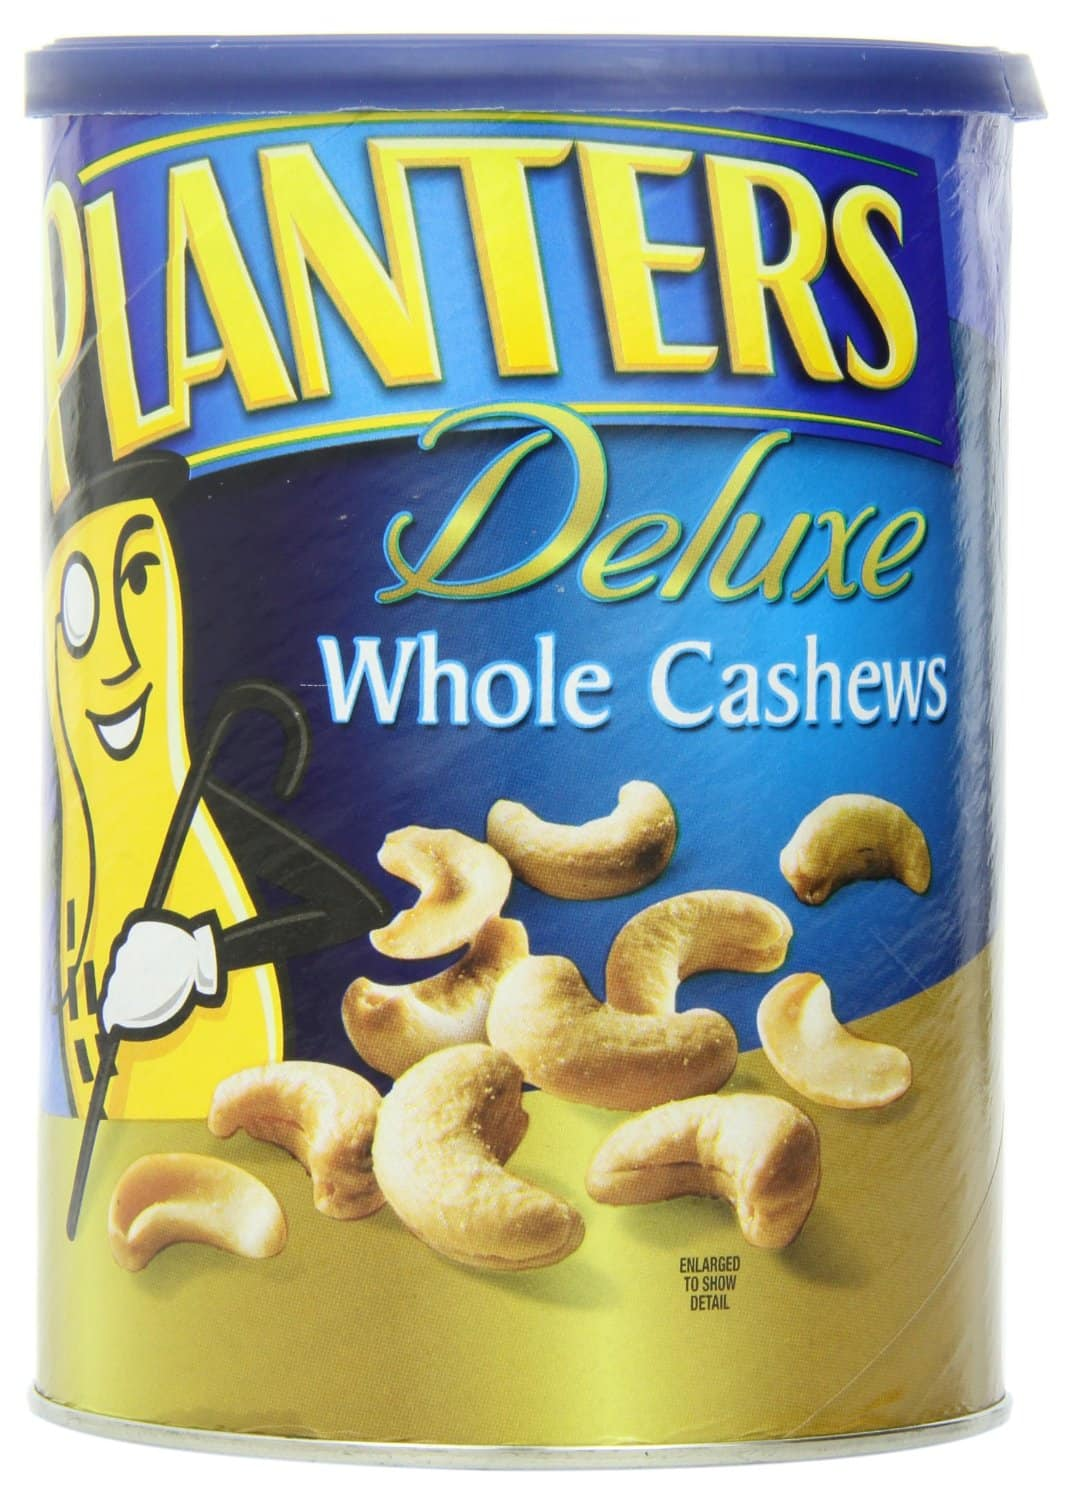 18.25oz Planters Deluxe Whole Cashews  $5.60 + Free Shipping